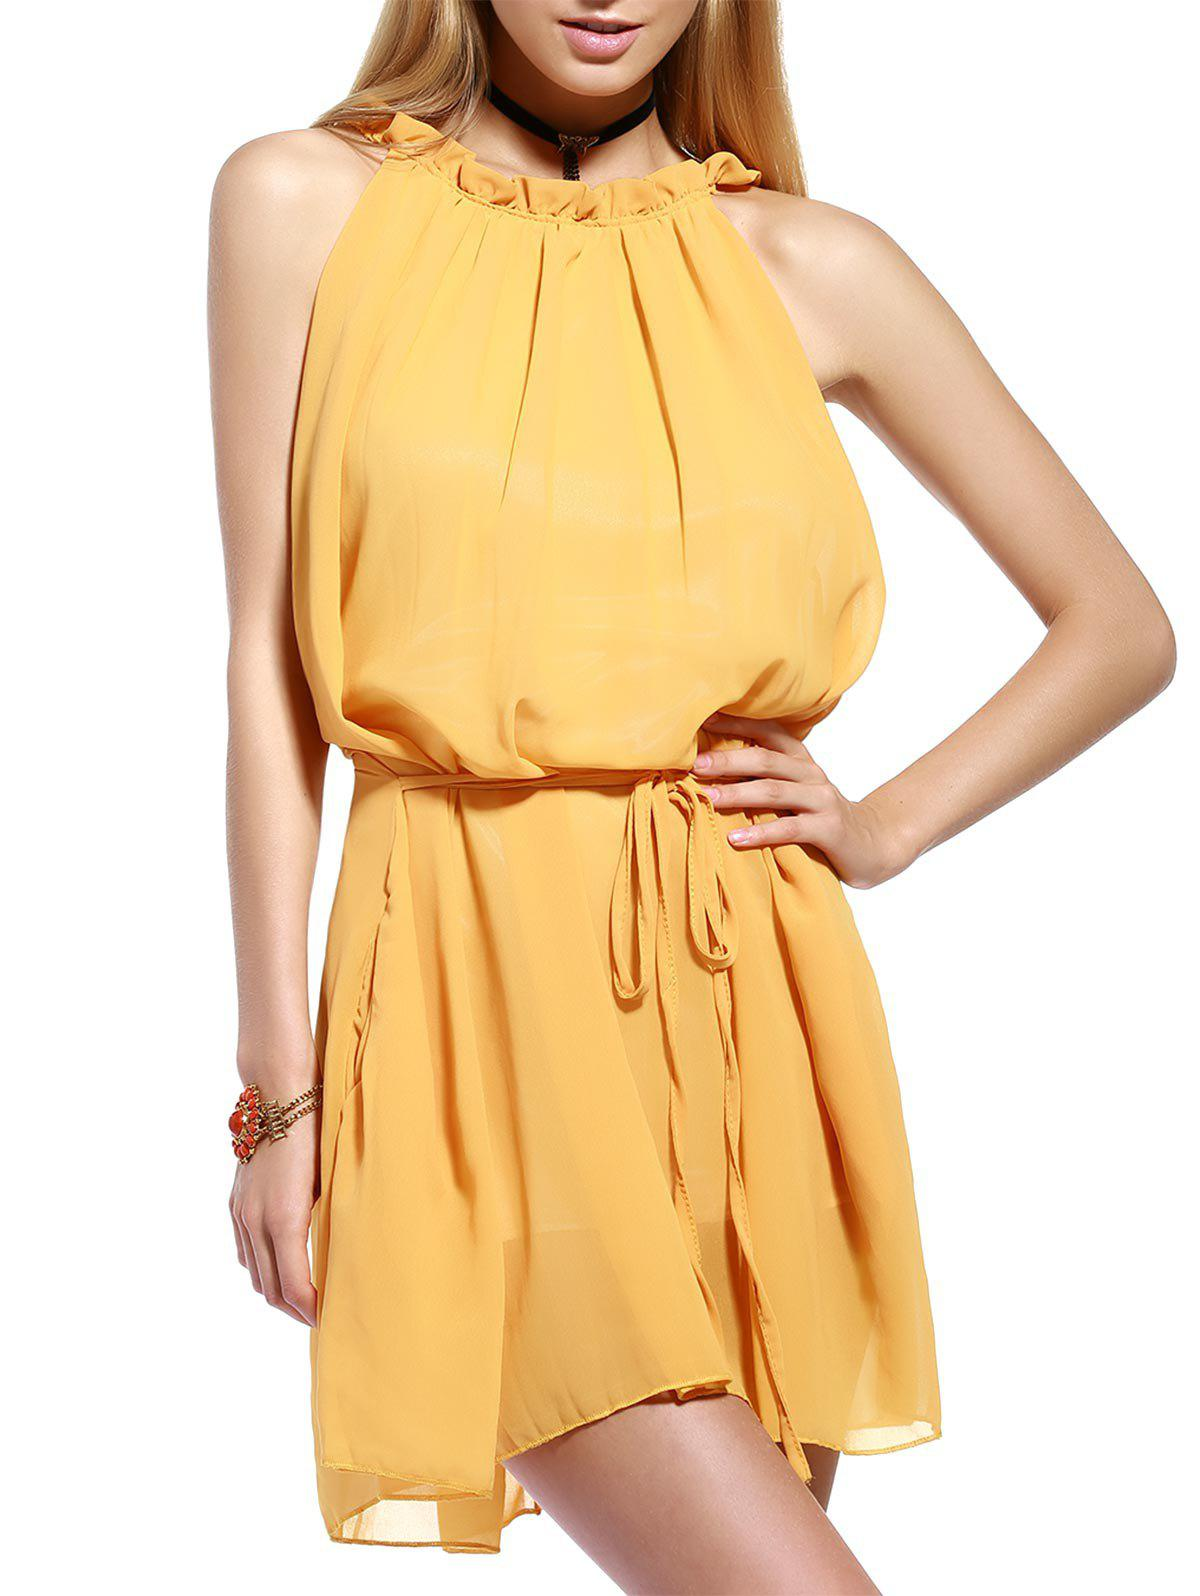 Chic Frill Collar Sleeveless Pleated Women's Dress - YELLOW S